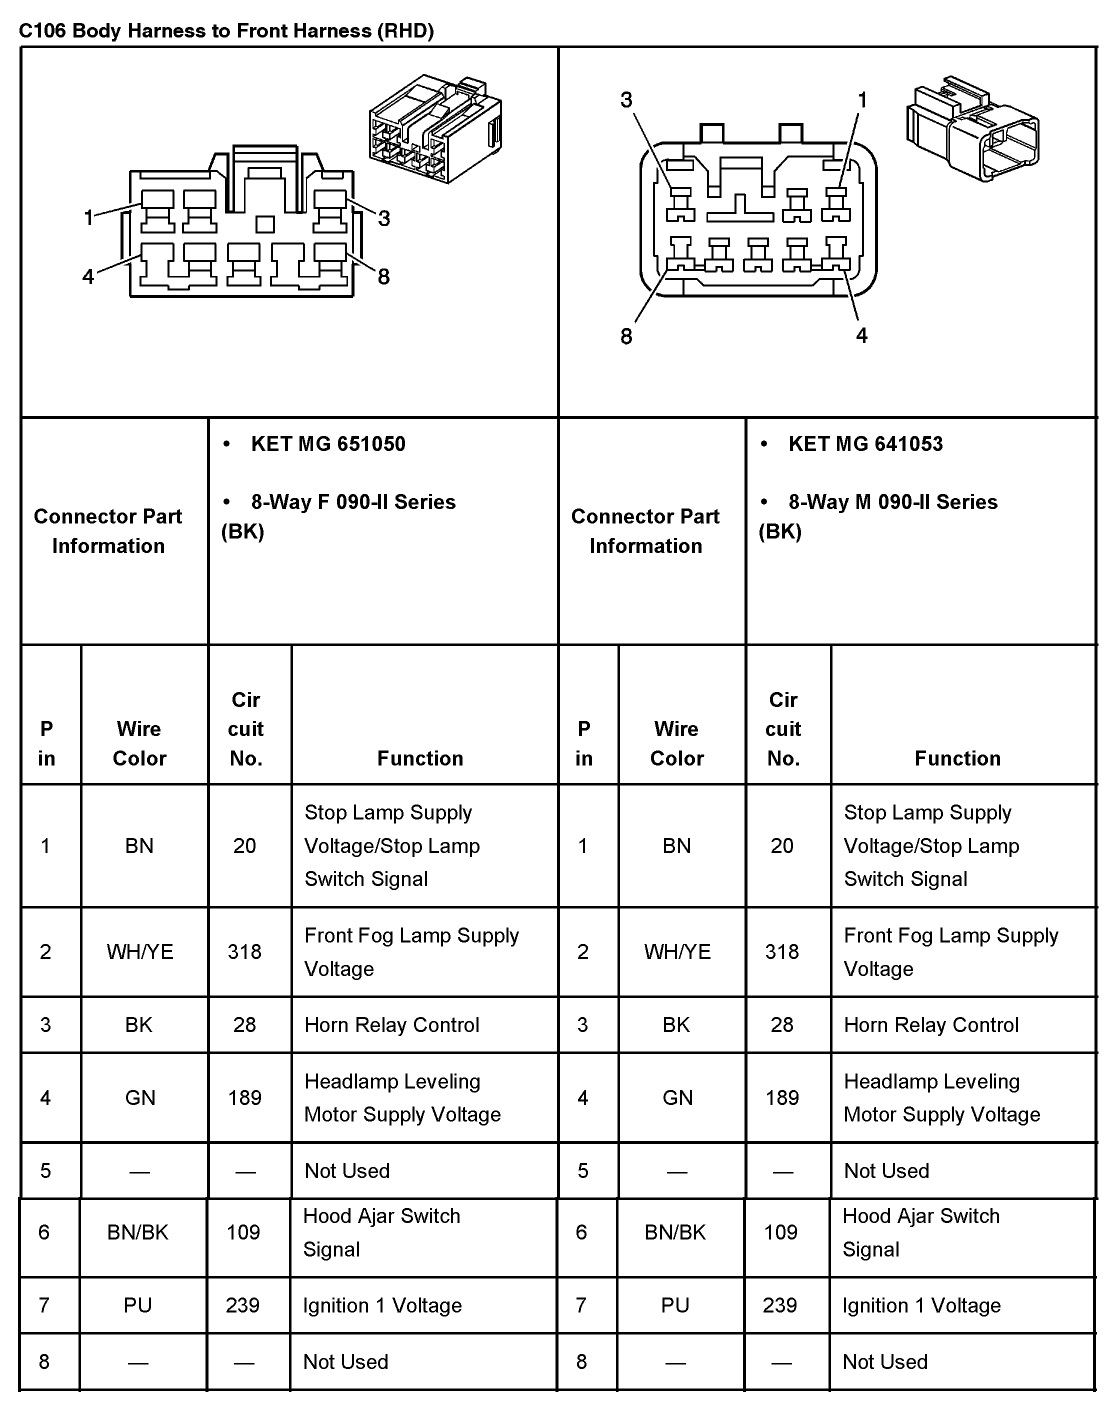 Chevy Optra 5 Wiring Diagram Worksheet And 1987 Gm Fuse Box 2005 Aveo Master Connector List Diagrams Rh Aveoforum Com 1975 Alternator Ignition